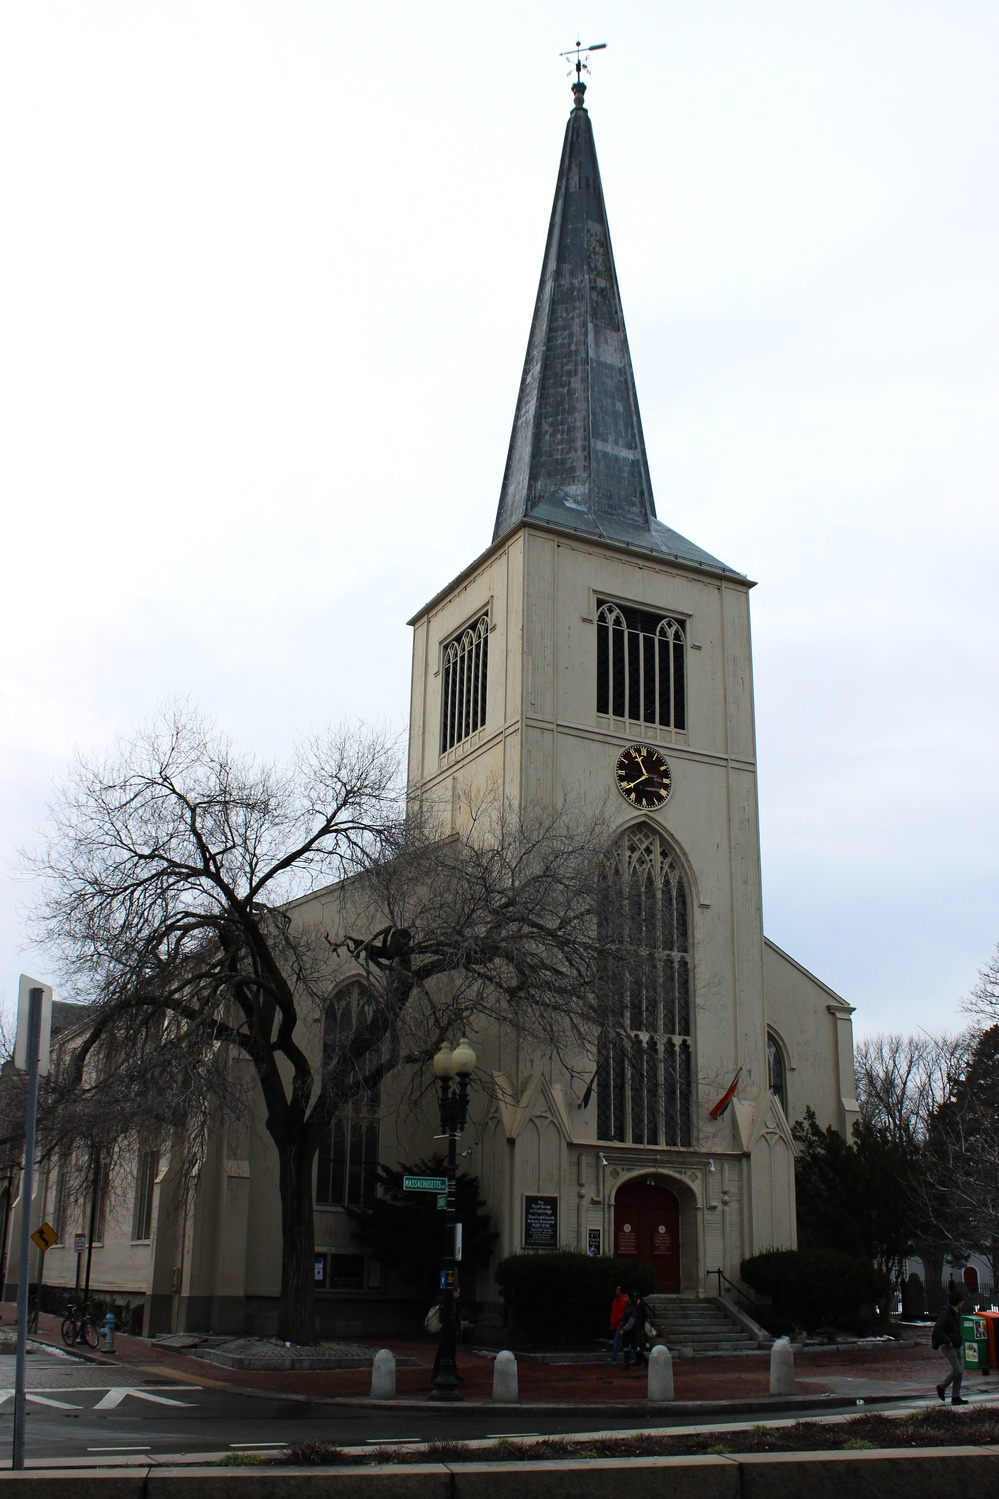 Y2Y Harvard Square, a group established to help reduce homelessness of young adults, is located in the First Parish Church in Harvard Square.